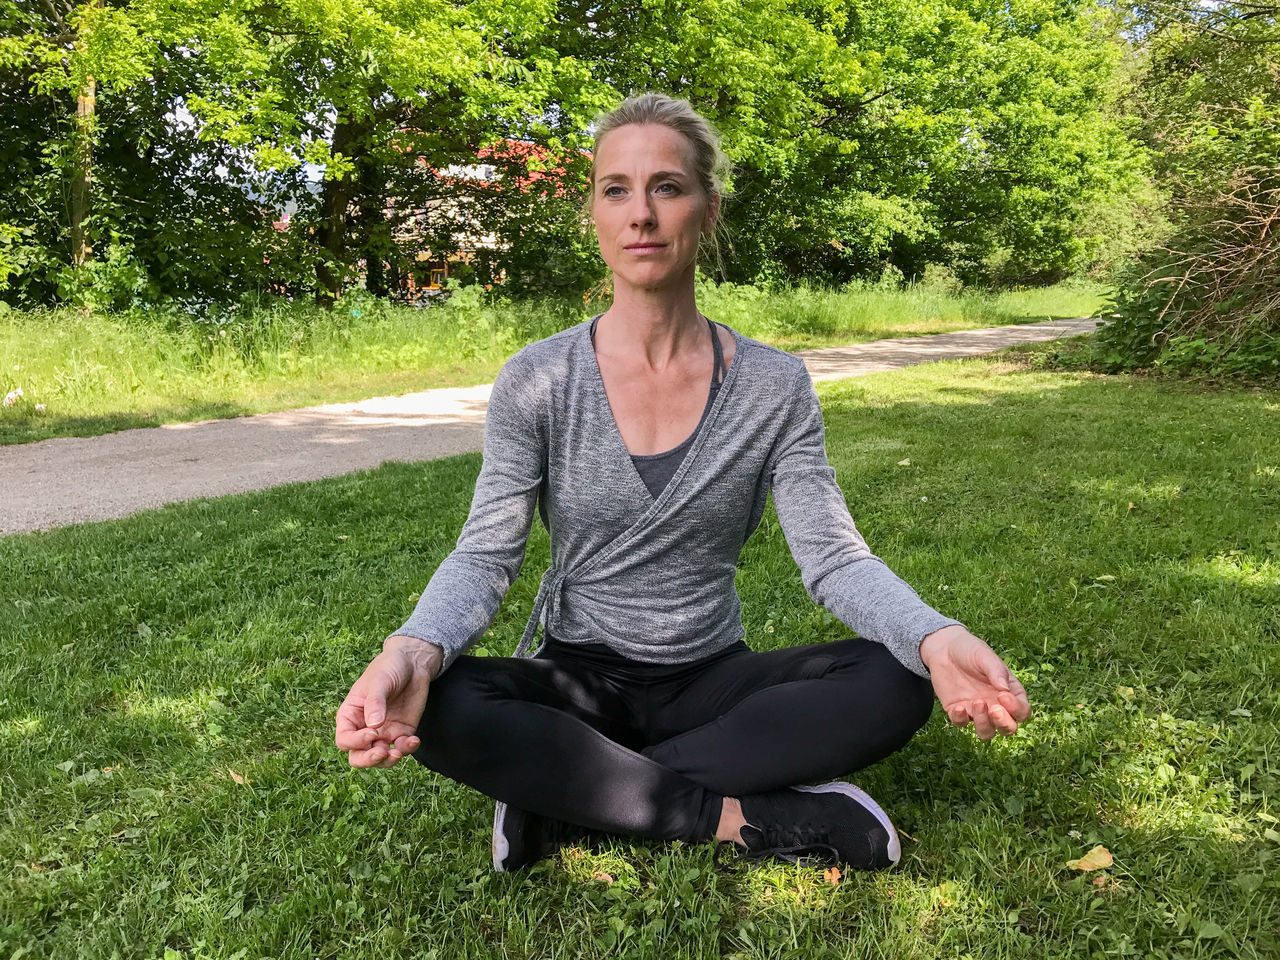 Beautiful Woman Blond Hair Confidence  Cross-legged Day Front View Full Length Grass Growth Happiness Leisure Activity Lifestyles Looking At Camera Nature One Person Outdoors Park - Man Made Space Portrait Real People Relaxation Sitting Tree Yoga Young Adult Young Women